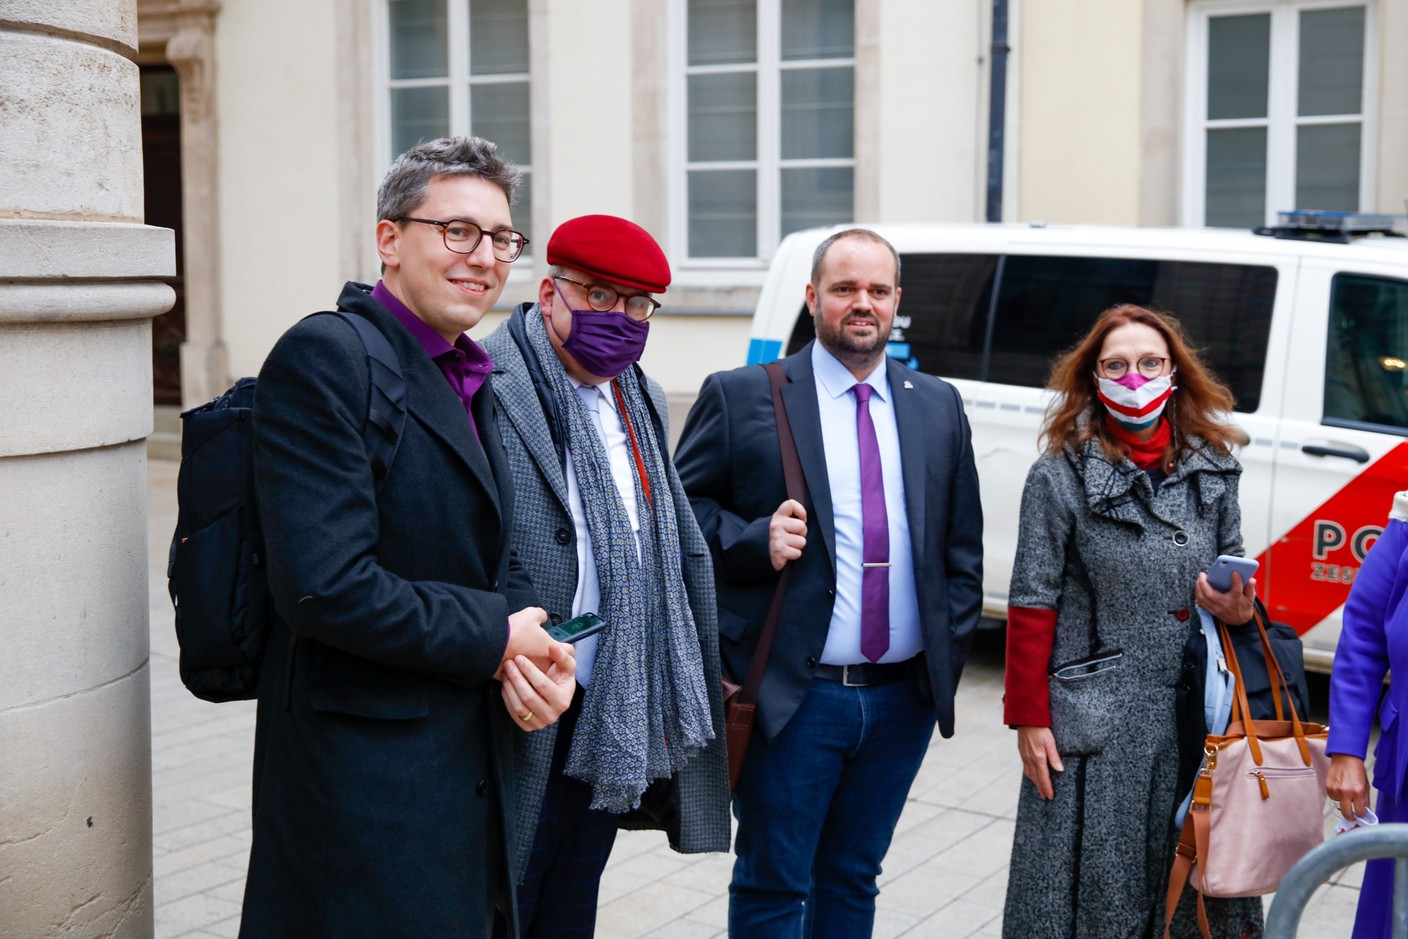 Sven Clement (Piratepartei),Marc Goergen (Piratepartei), 1st and 3rd from left to right. (Photo: Romain Gamba/Maison Moderne)